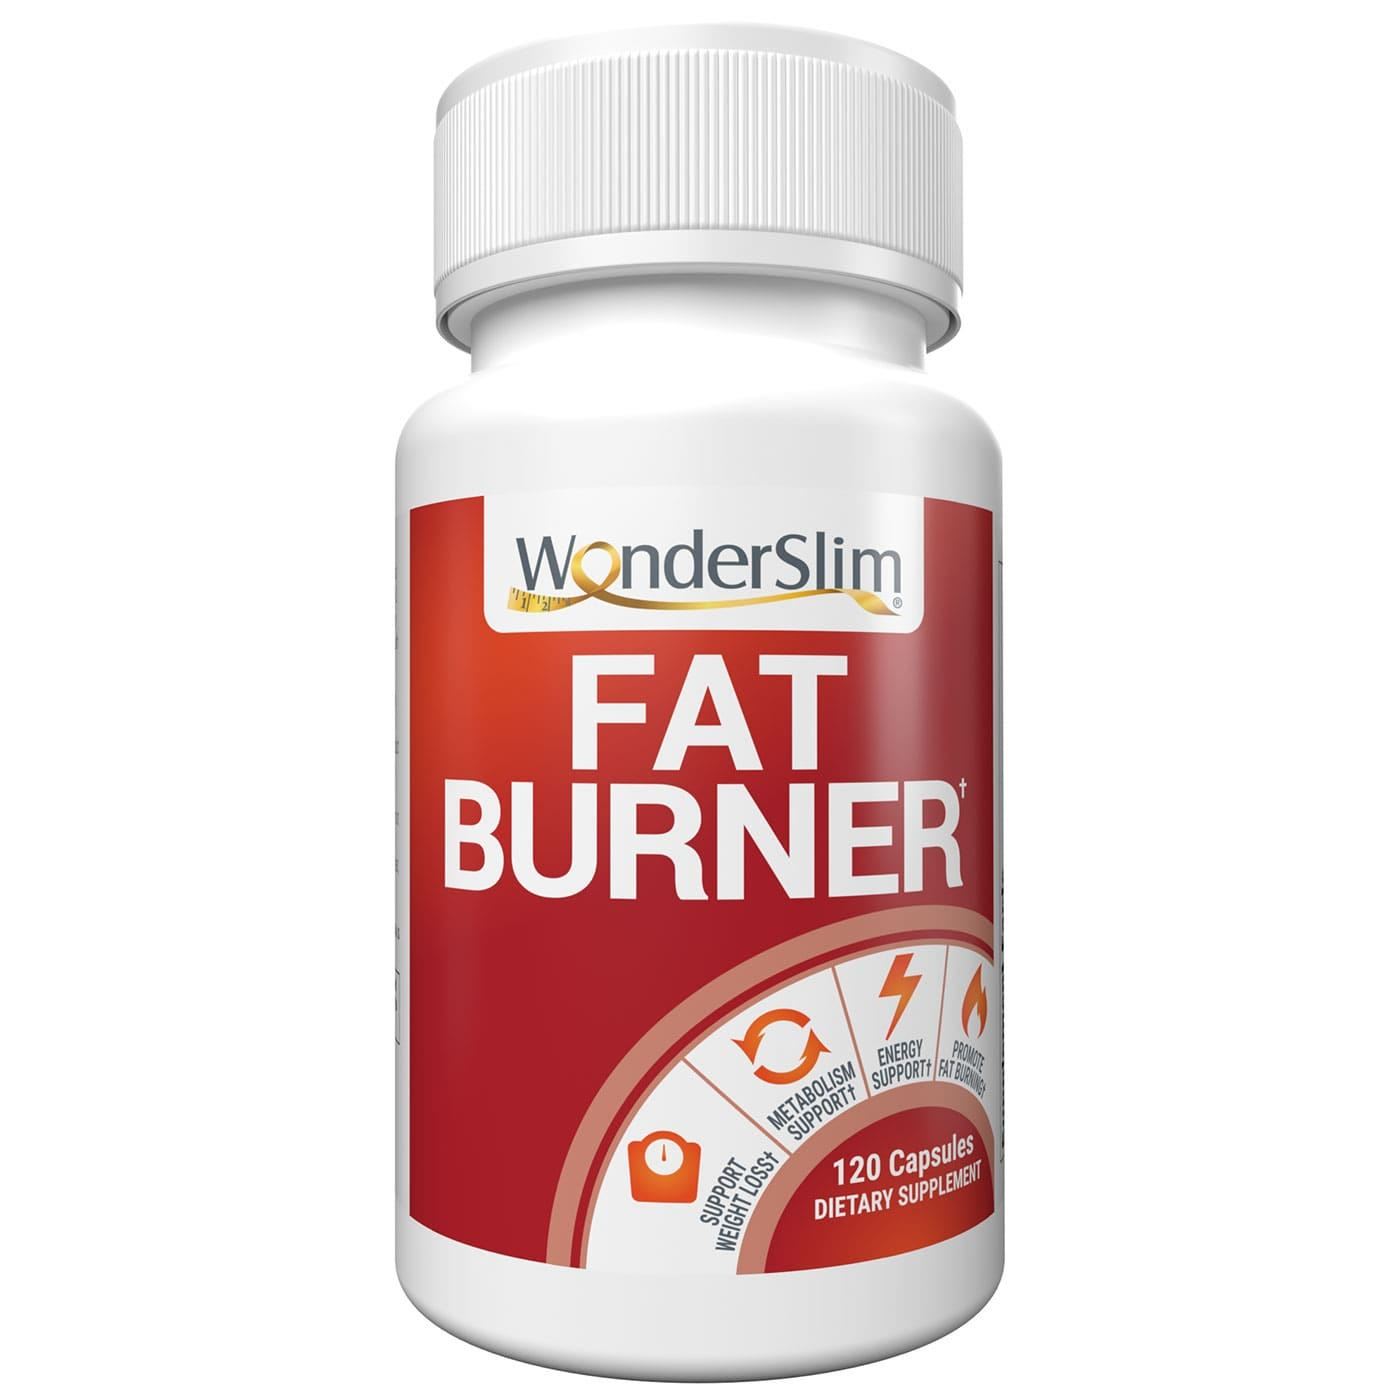 WonderSlim Fat Burner for Weight Loss Support (120ct)